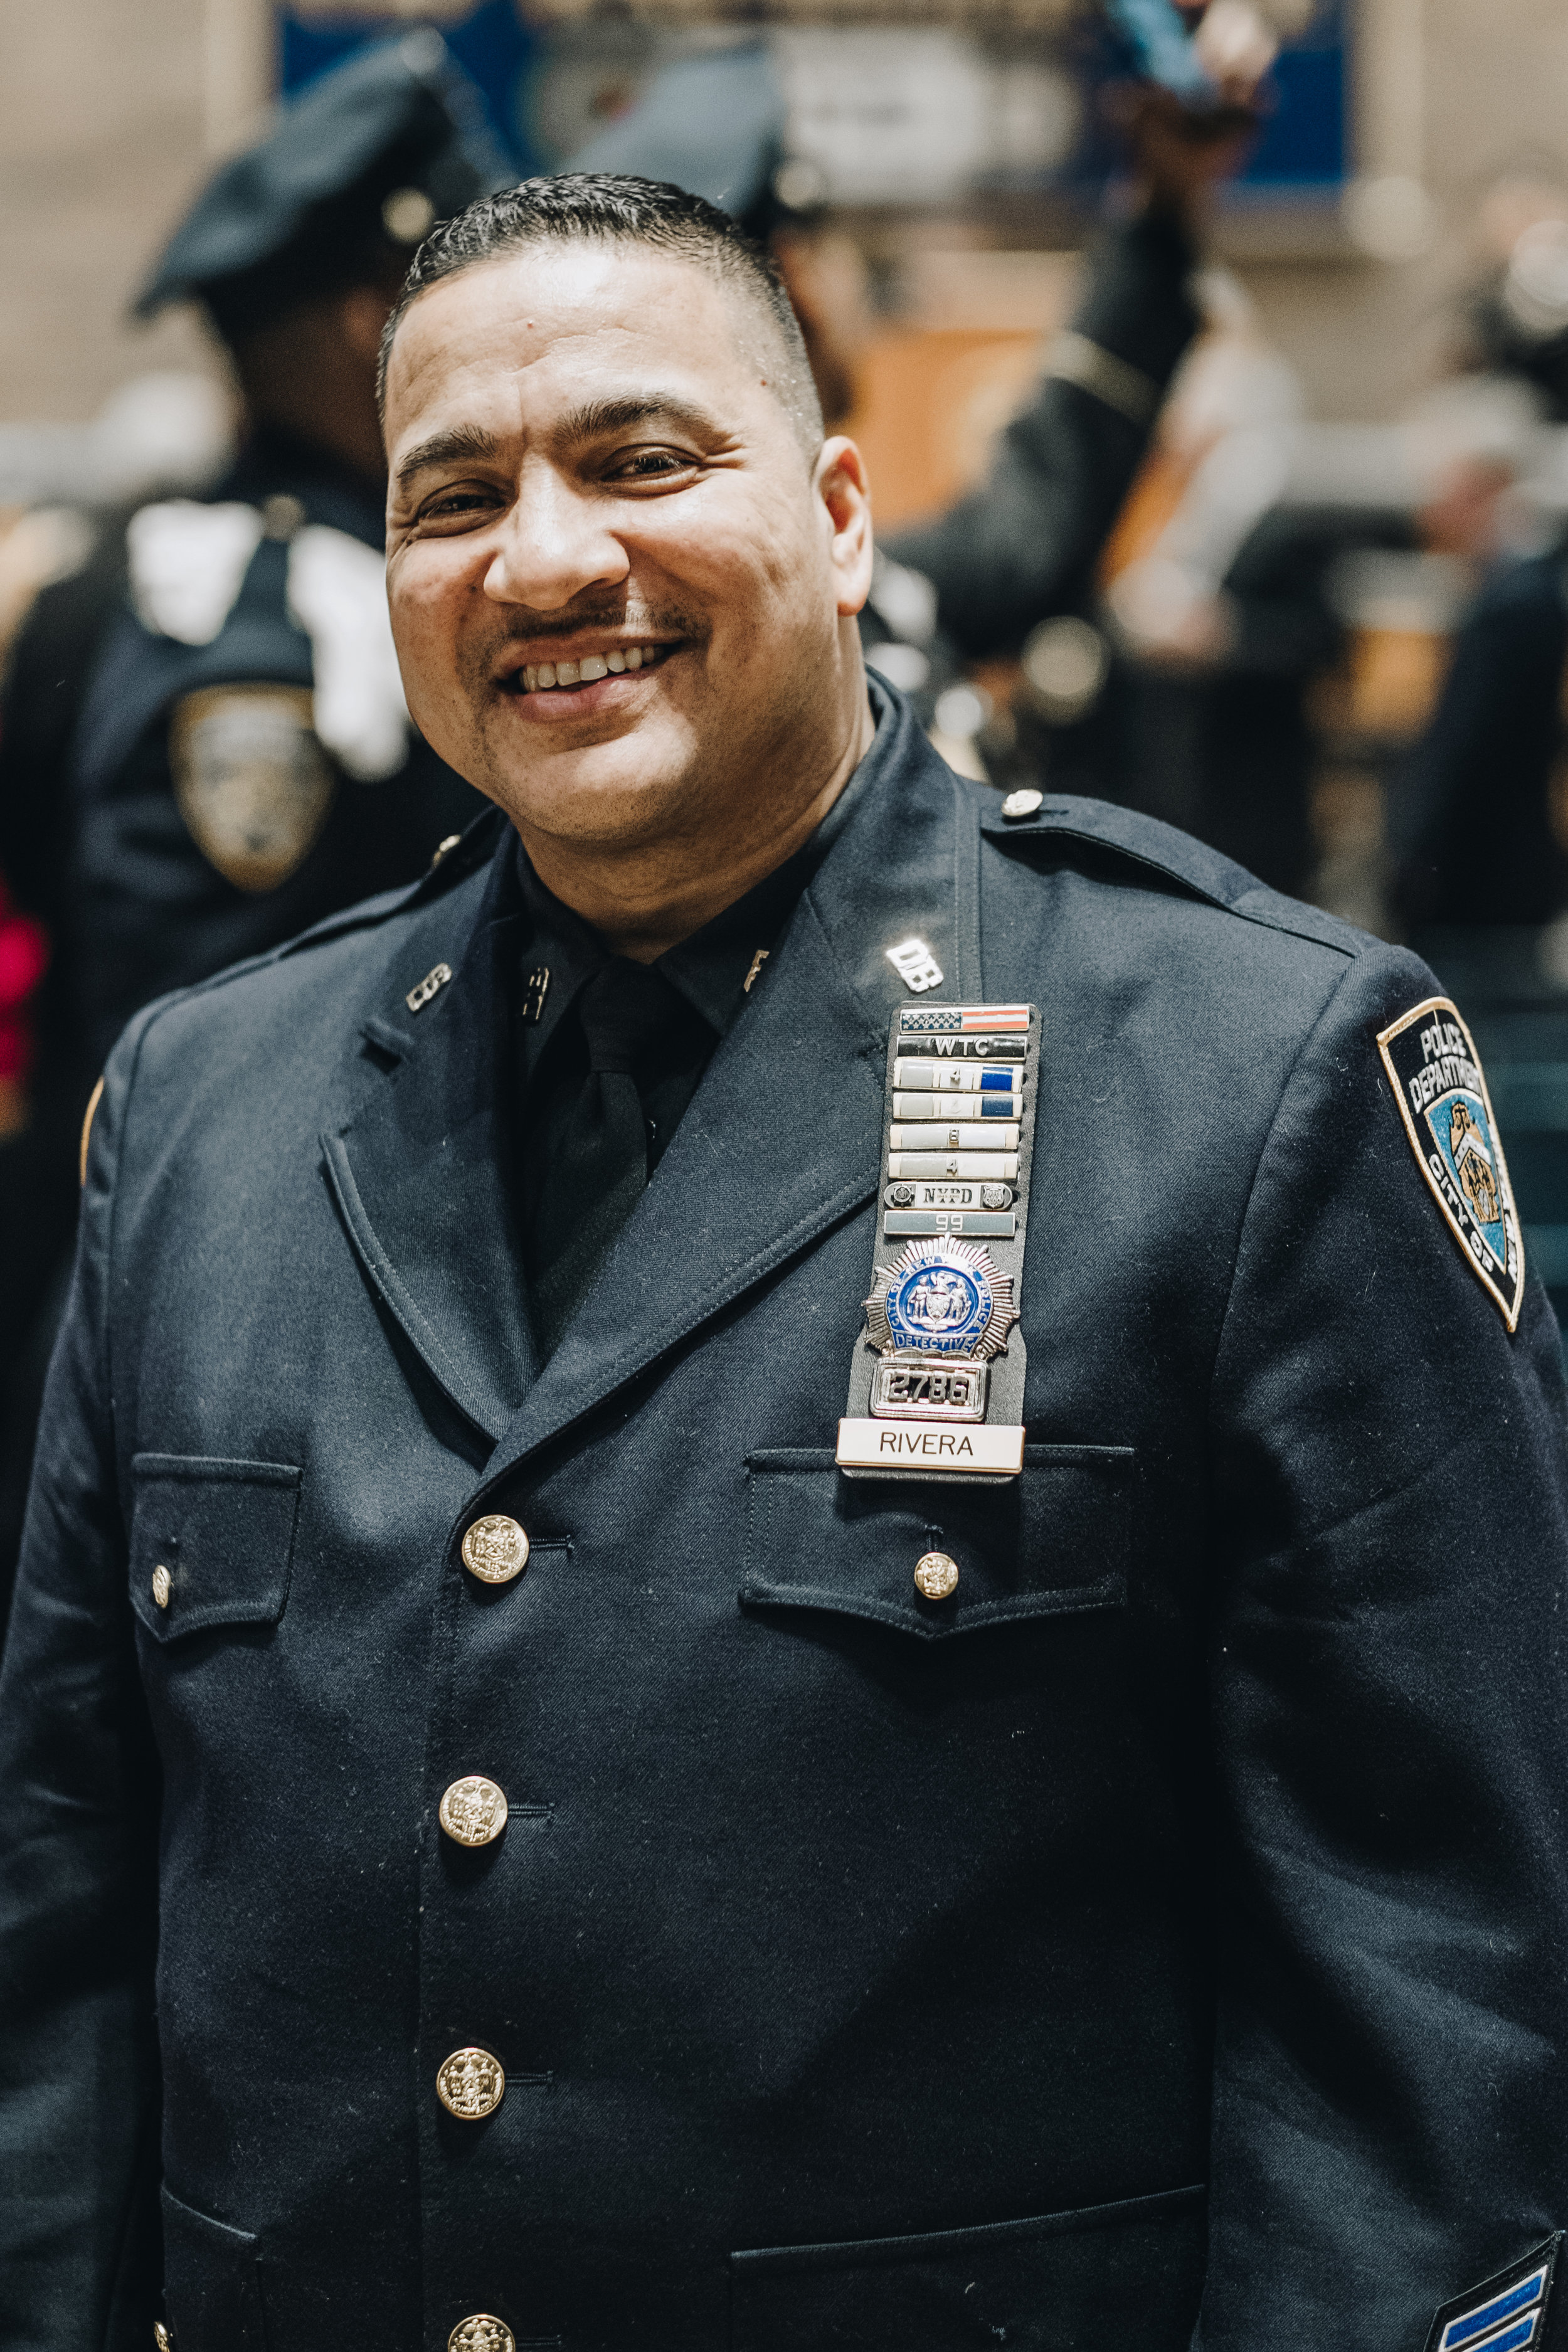 NYPD_Promotions-8.jpg